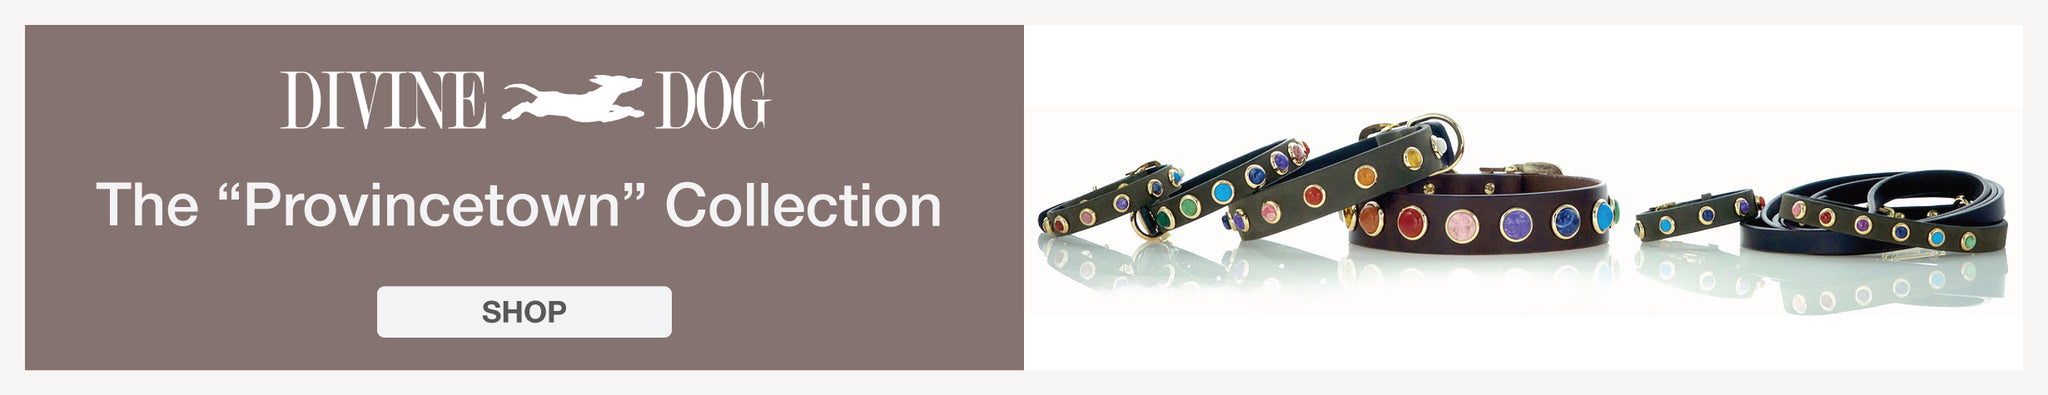 Divine Dog Provincetown Collection of Leather Dog Collars with Gemstones